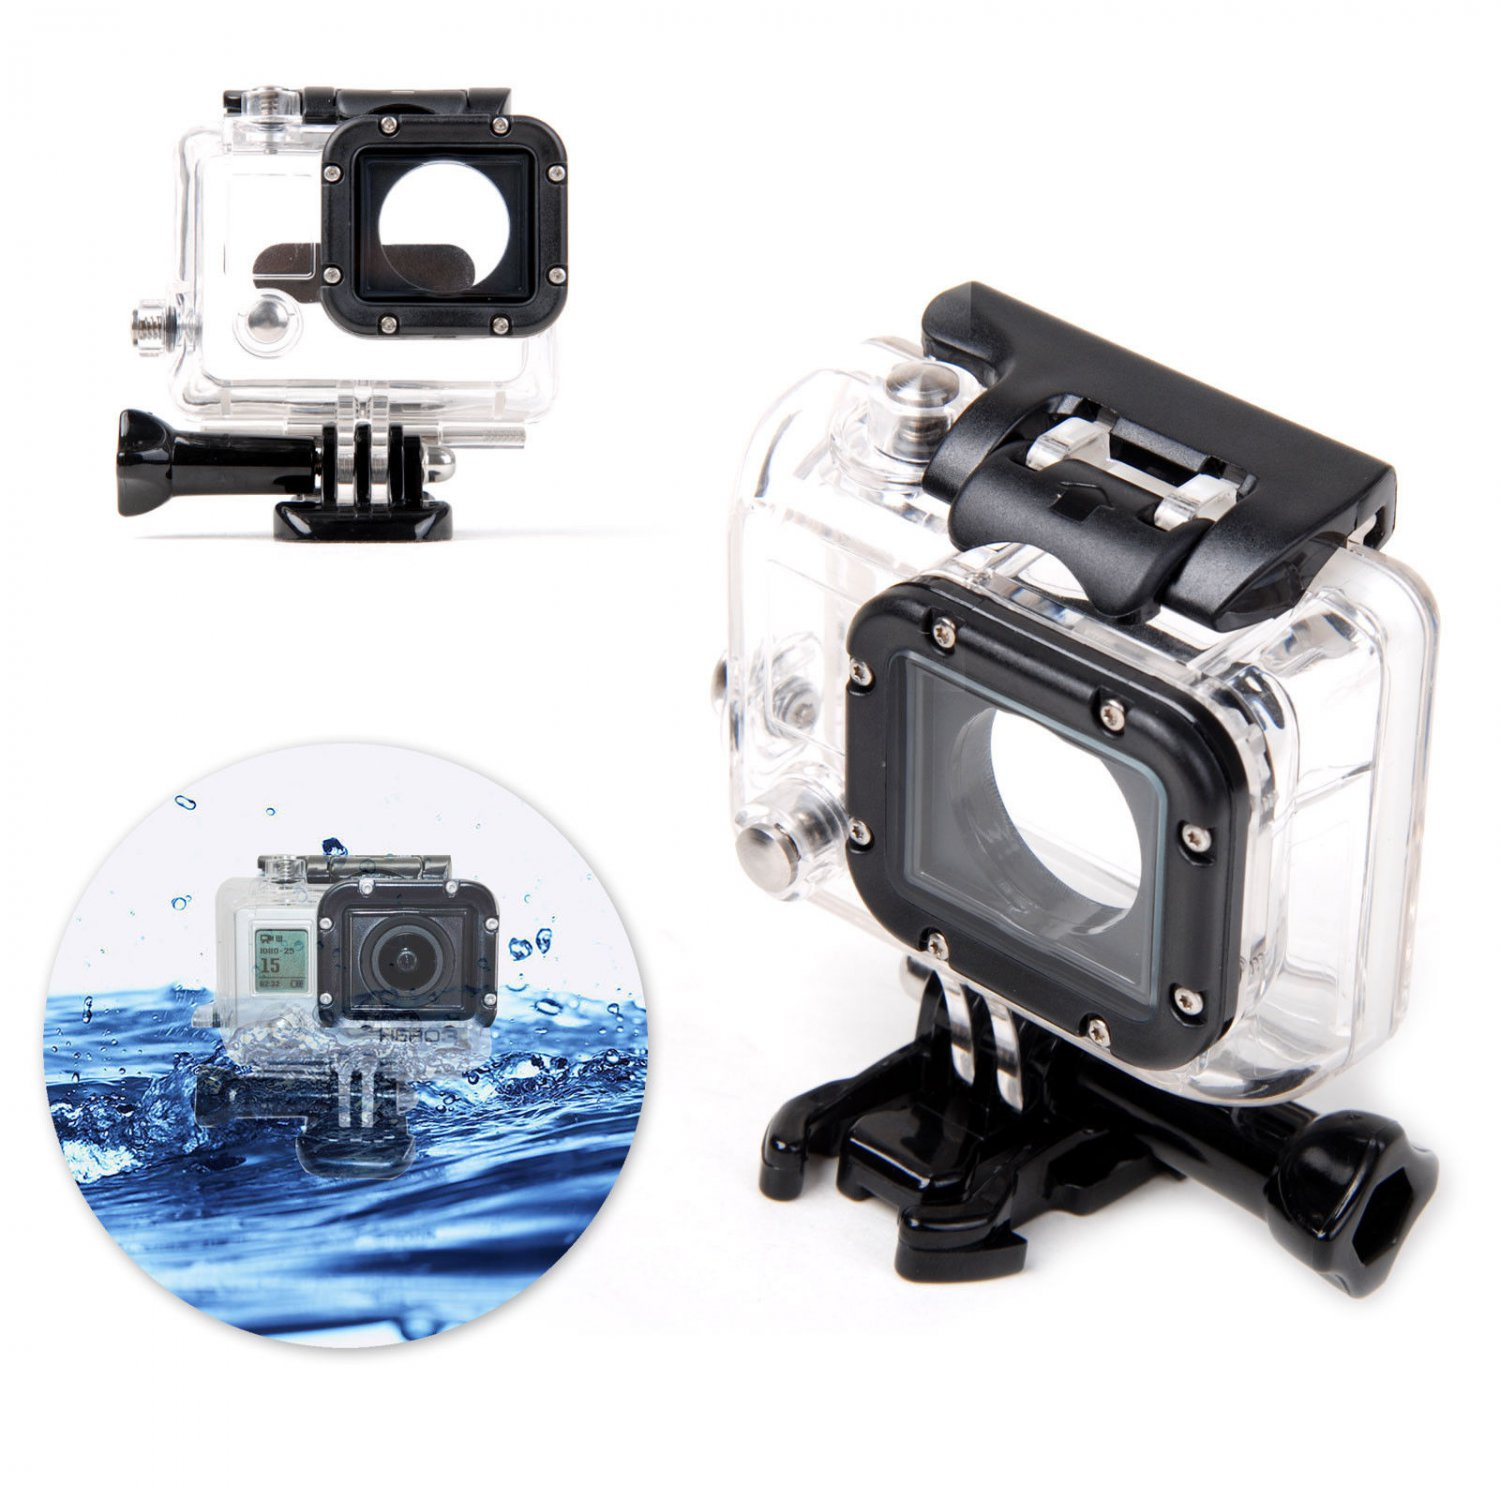 New Waterproof Transparent Diving Housing Case for Gopro Hero 3 3